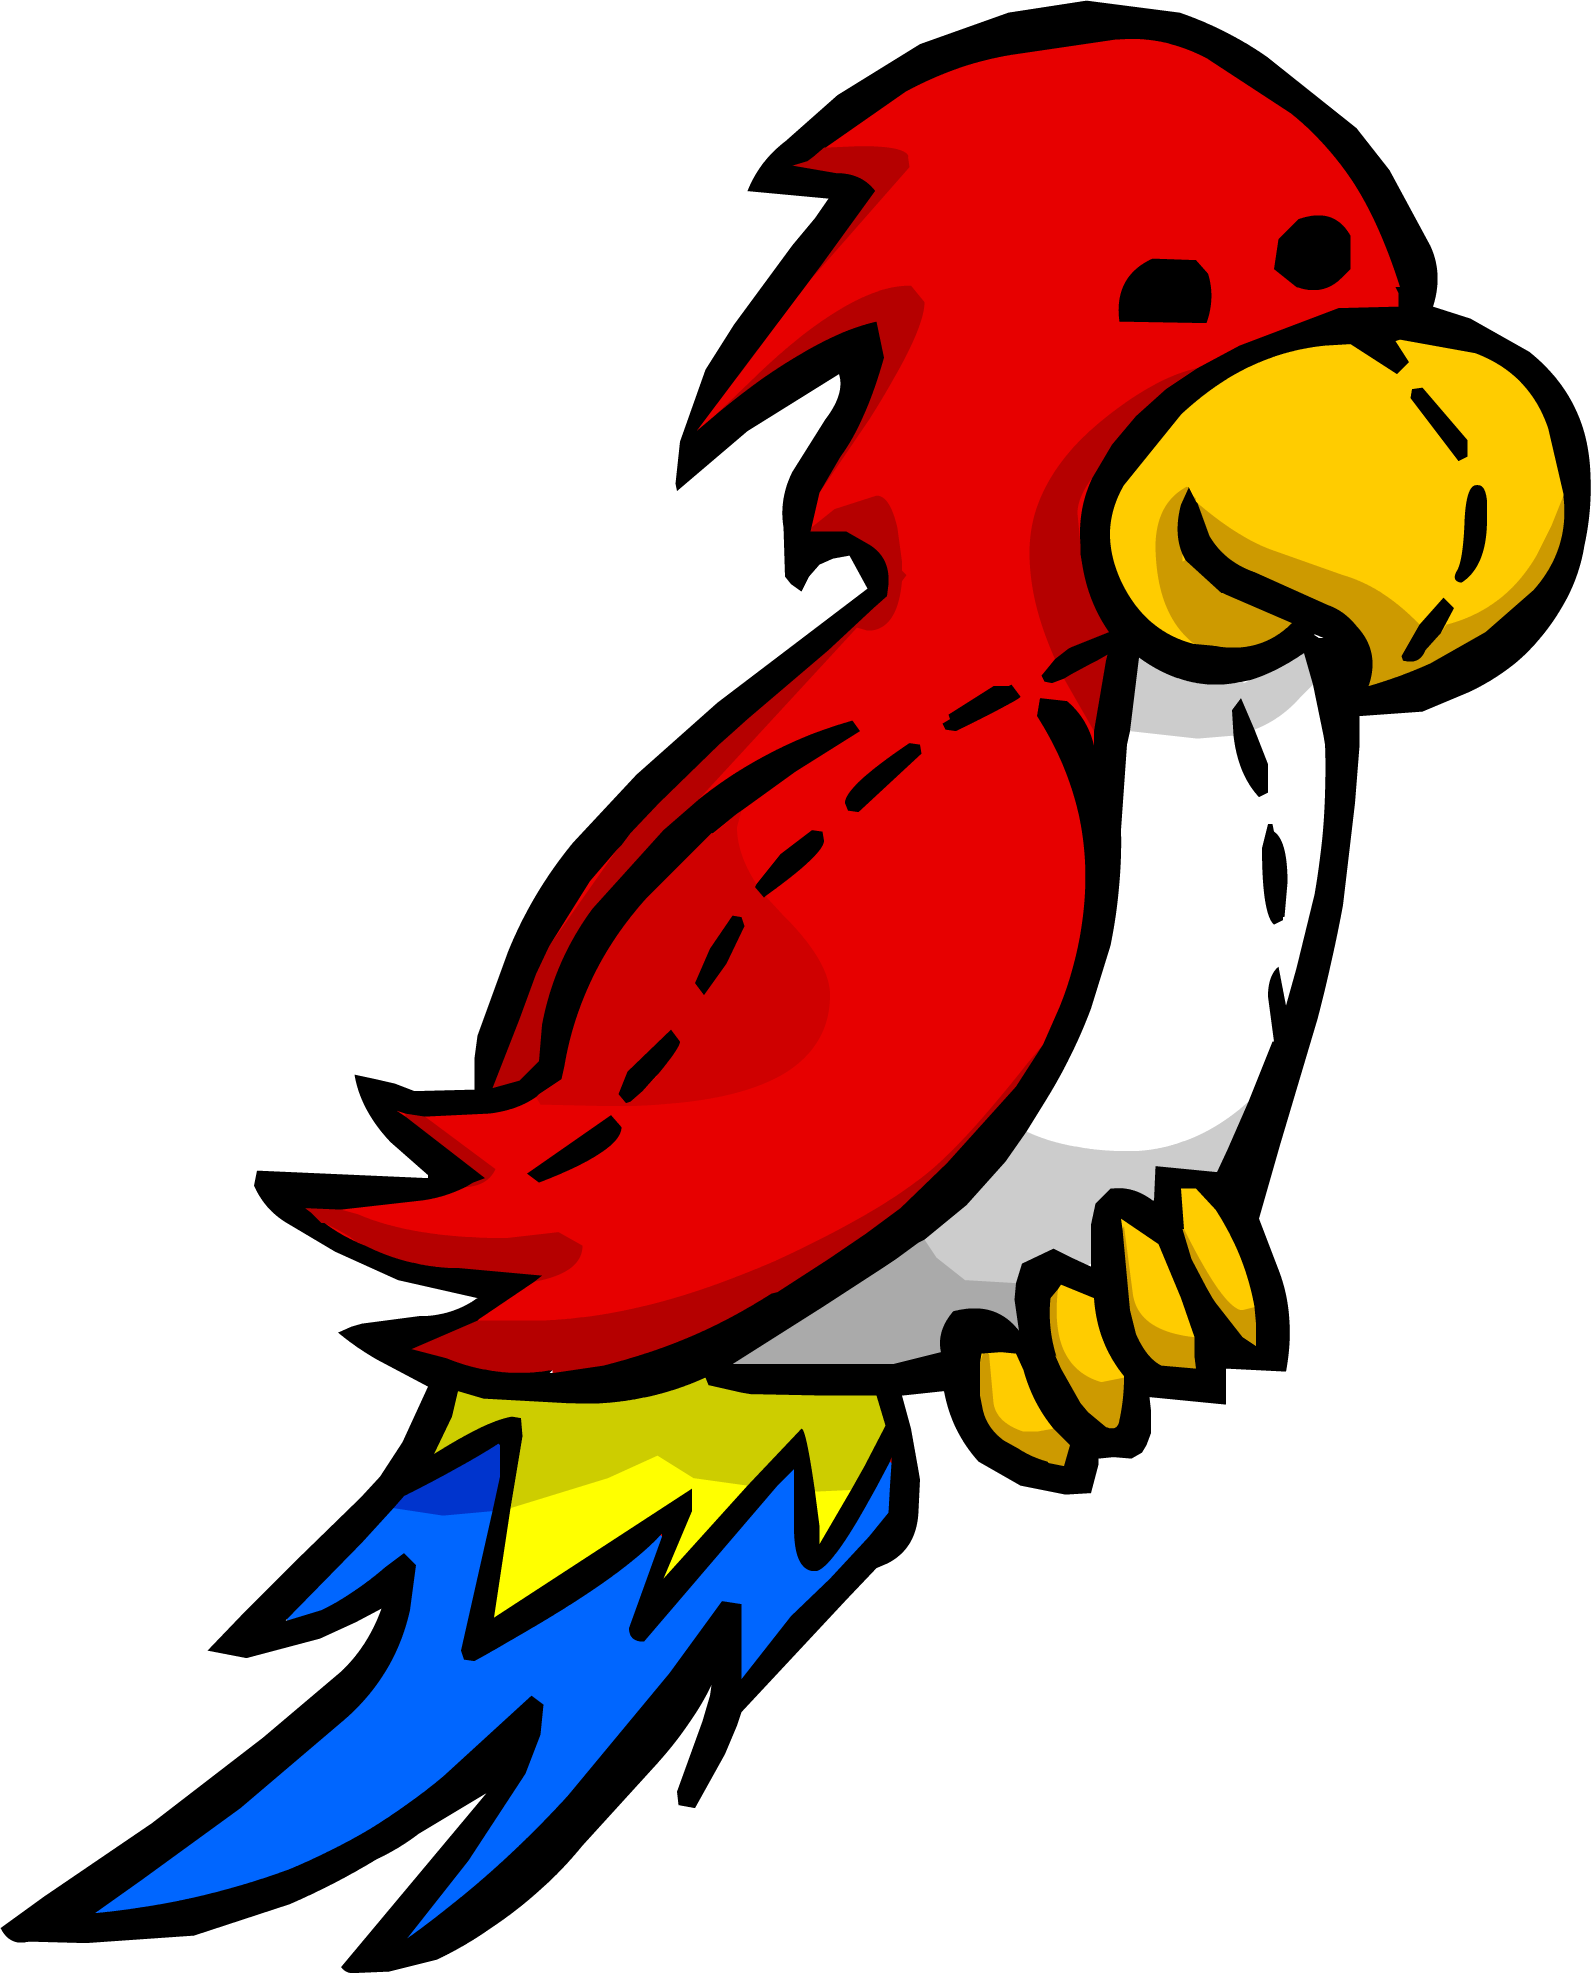 Download Stuffed Parrot - Club Penguin Parrot PNG Image with